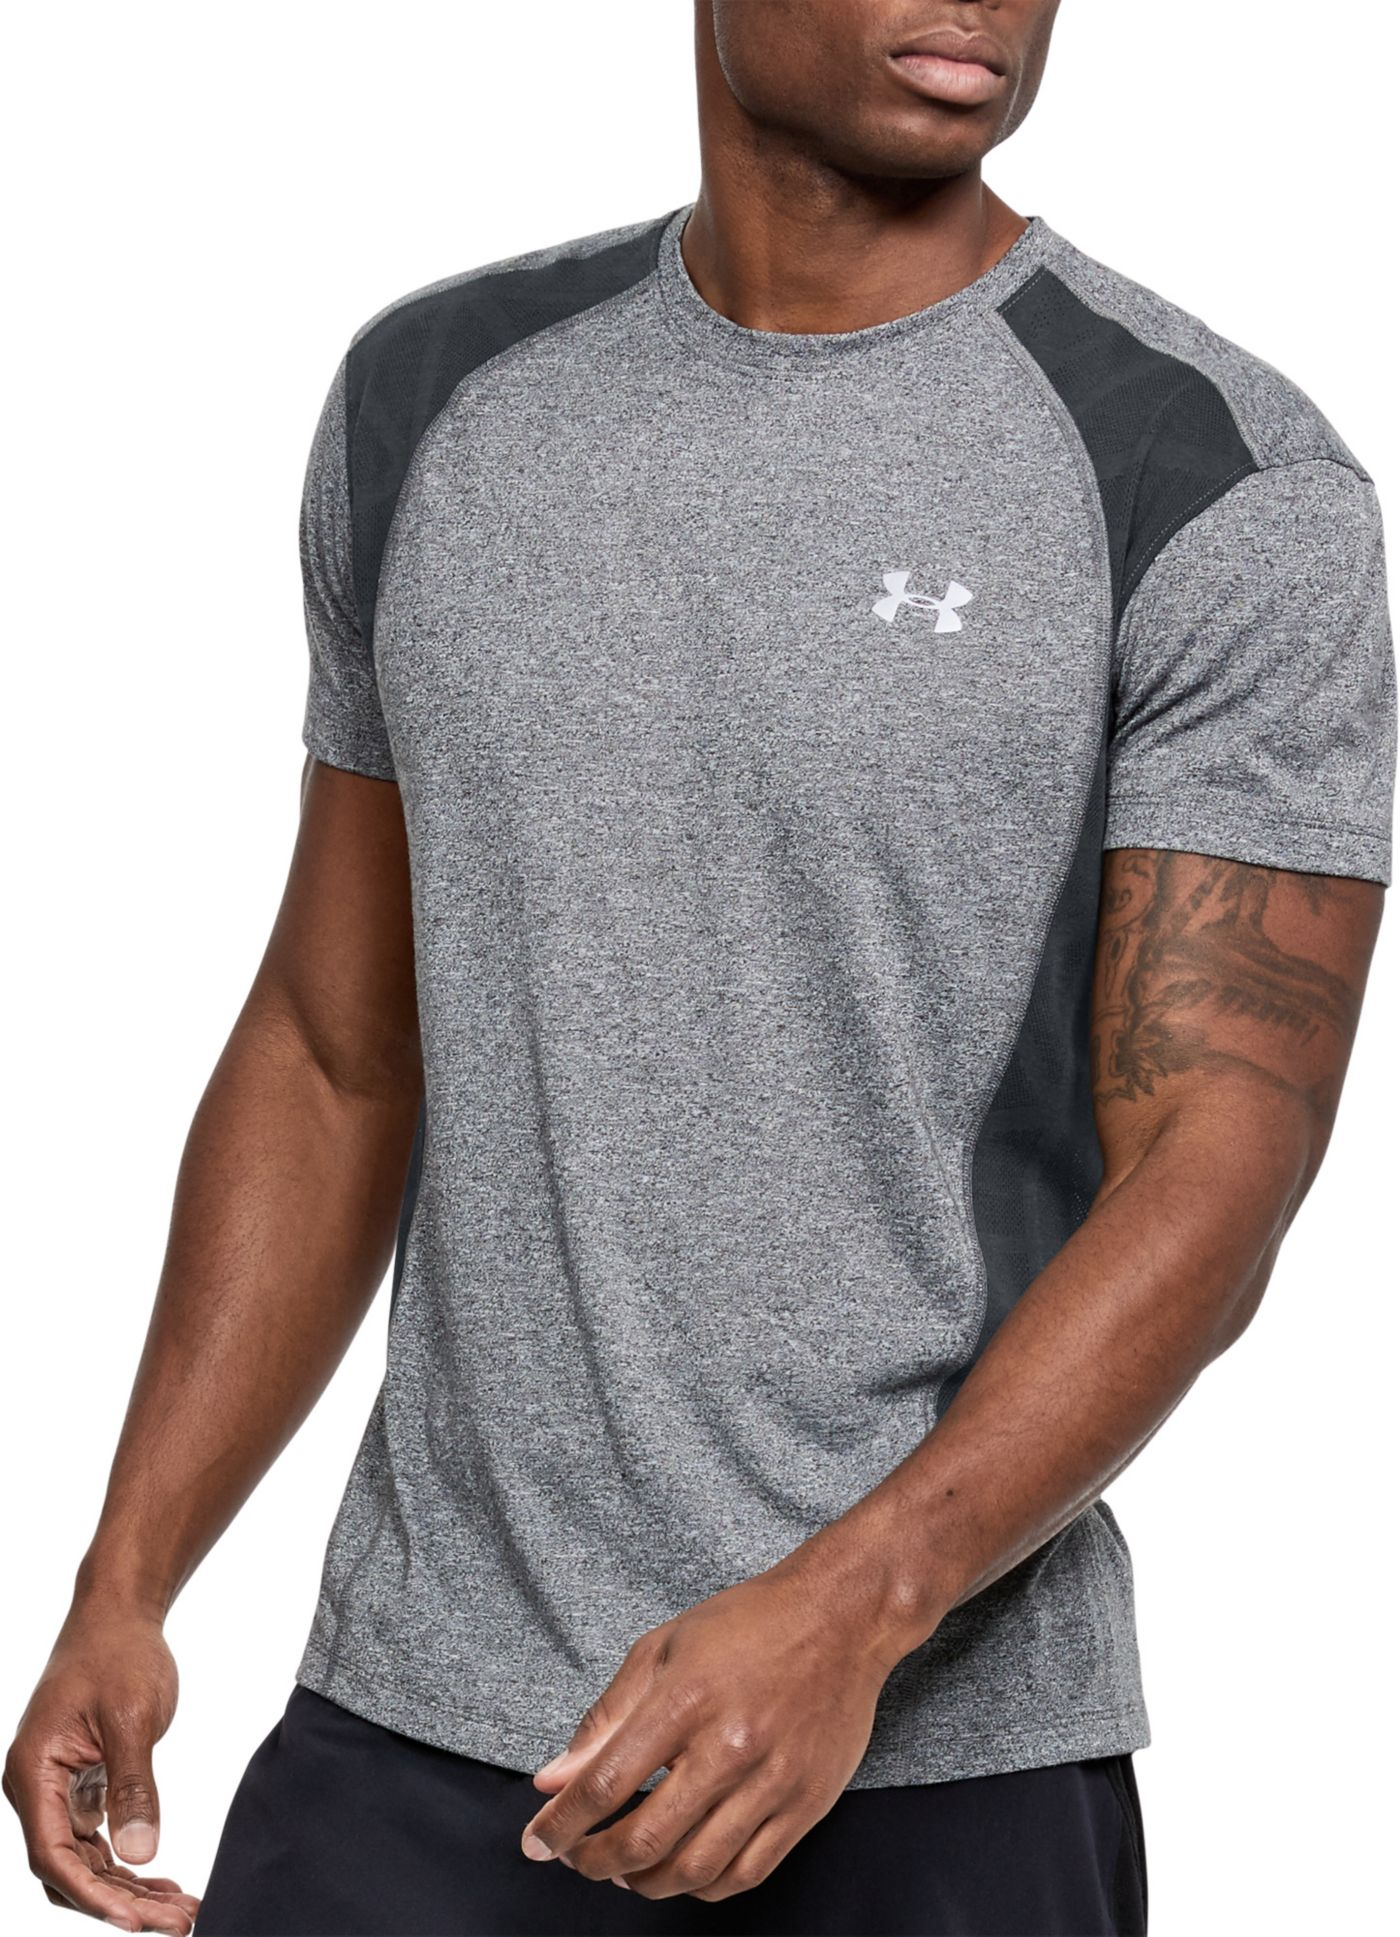 Under Armour Men's Threadborne Microthread Swyft Running T-Shirt